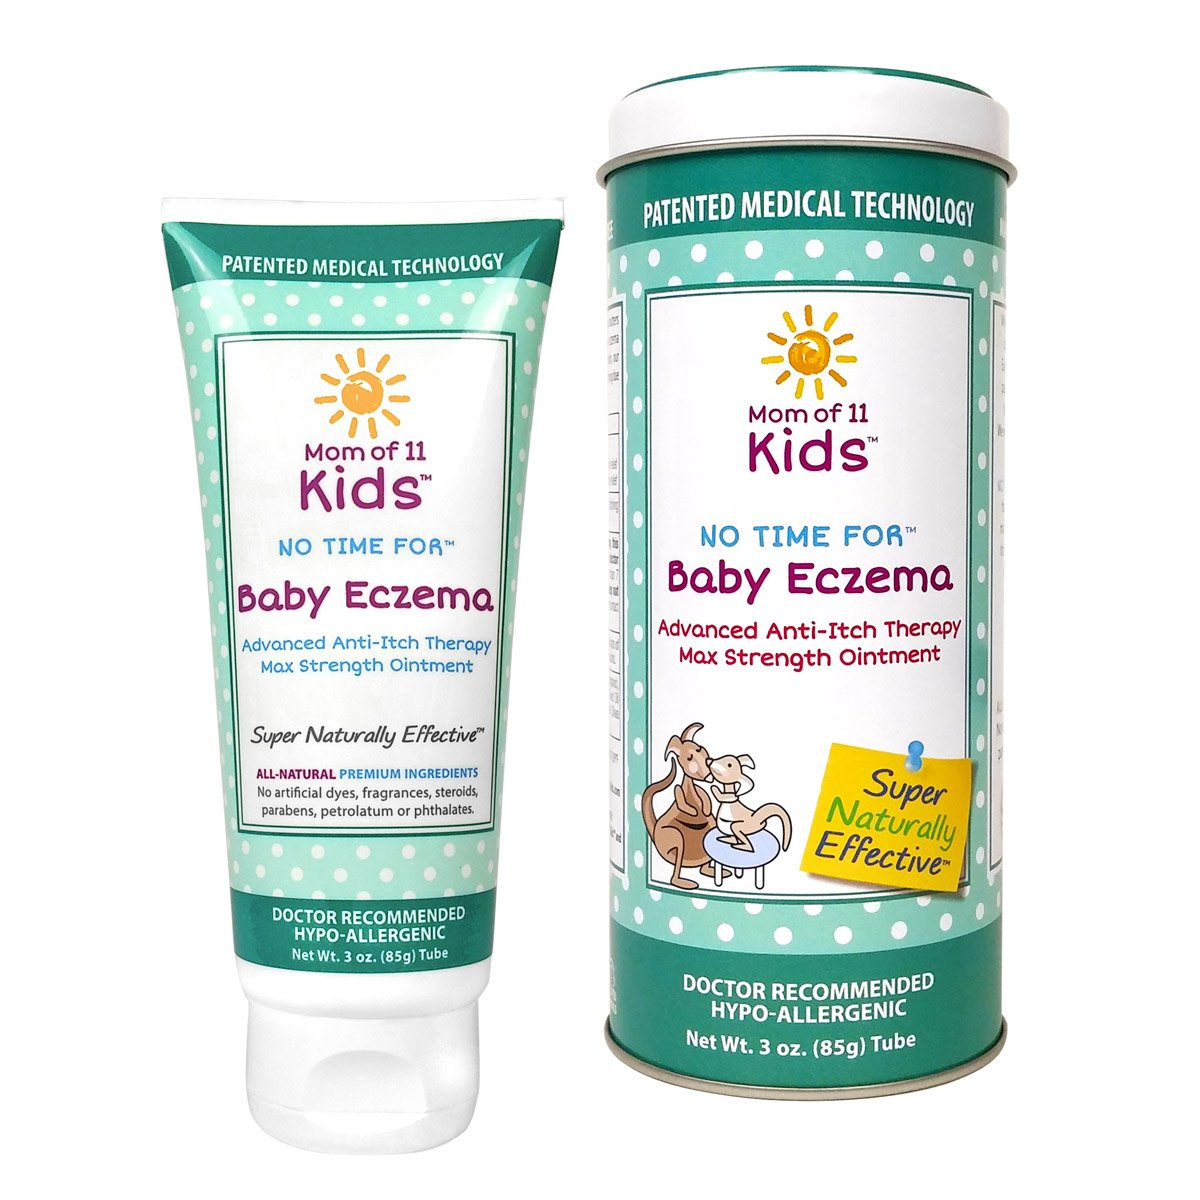 Baby Eczema Cream - Anti Itch Healing All Natural Hypoallergenic Dr Recommended Safe